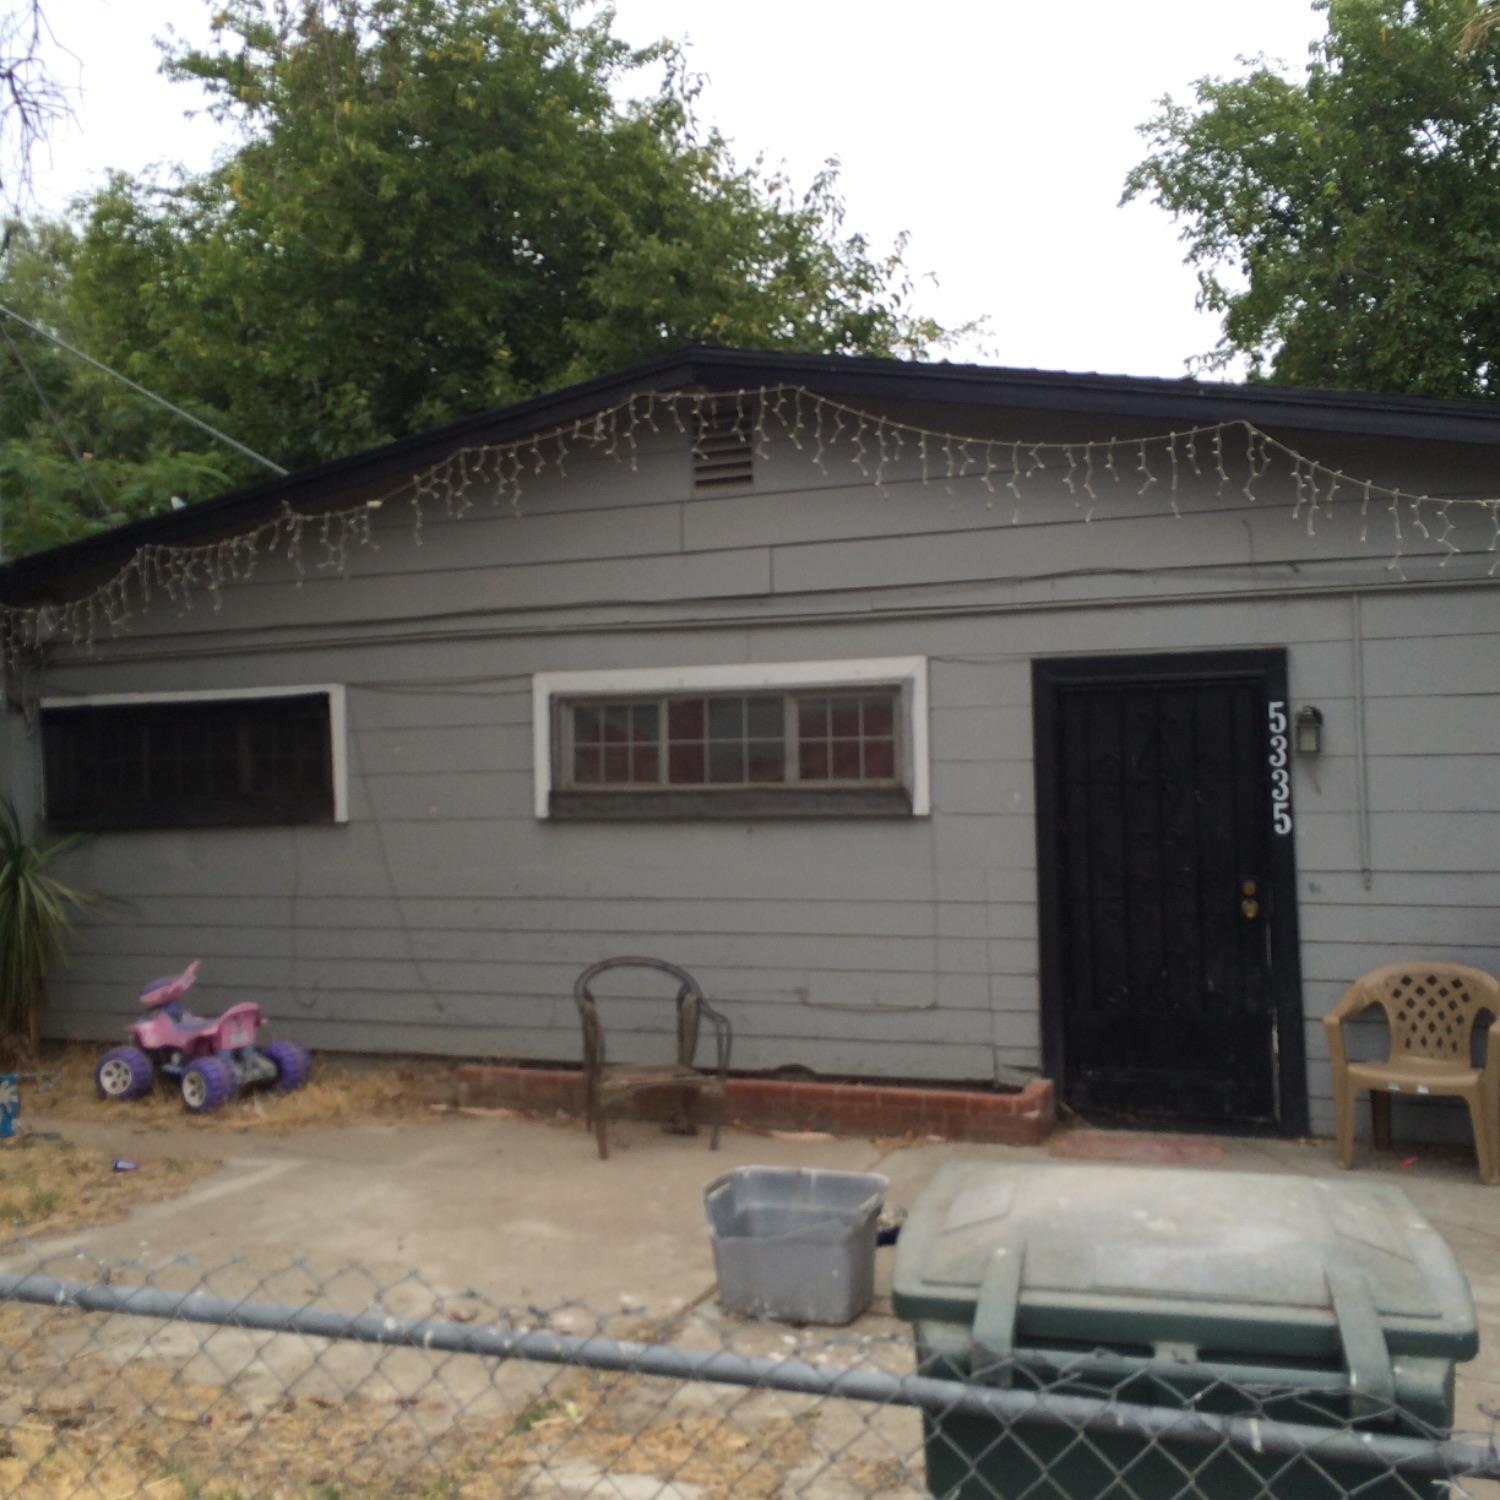 5335 Feather River Blvd, Yuba City, California 95961